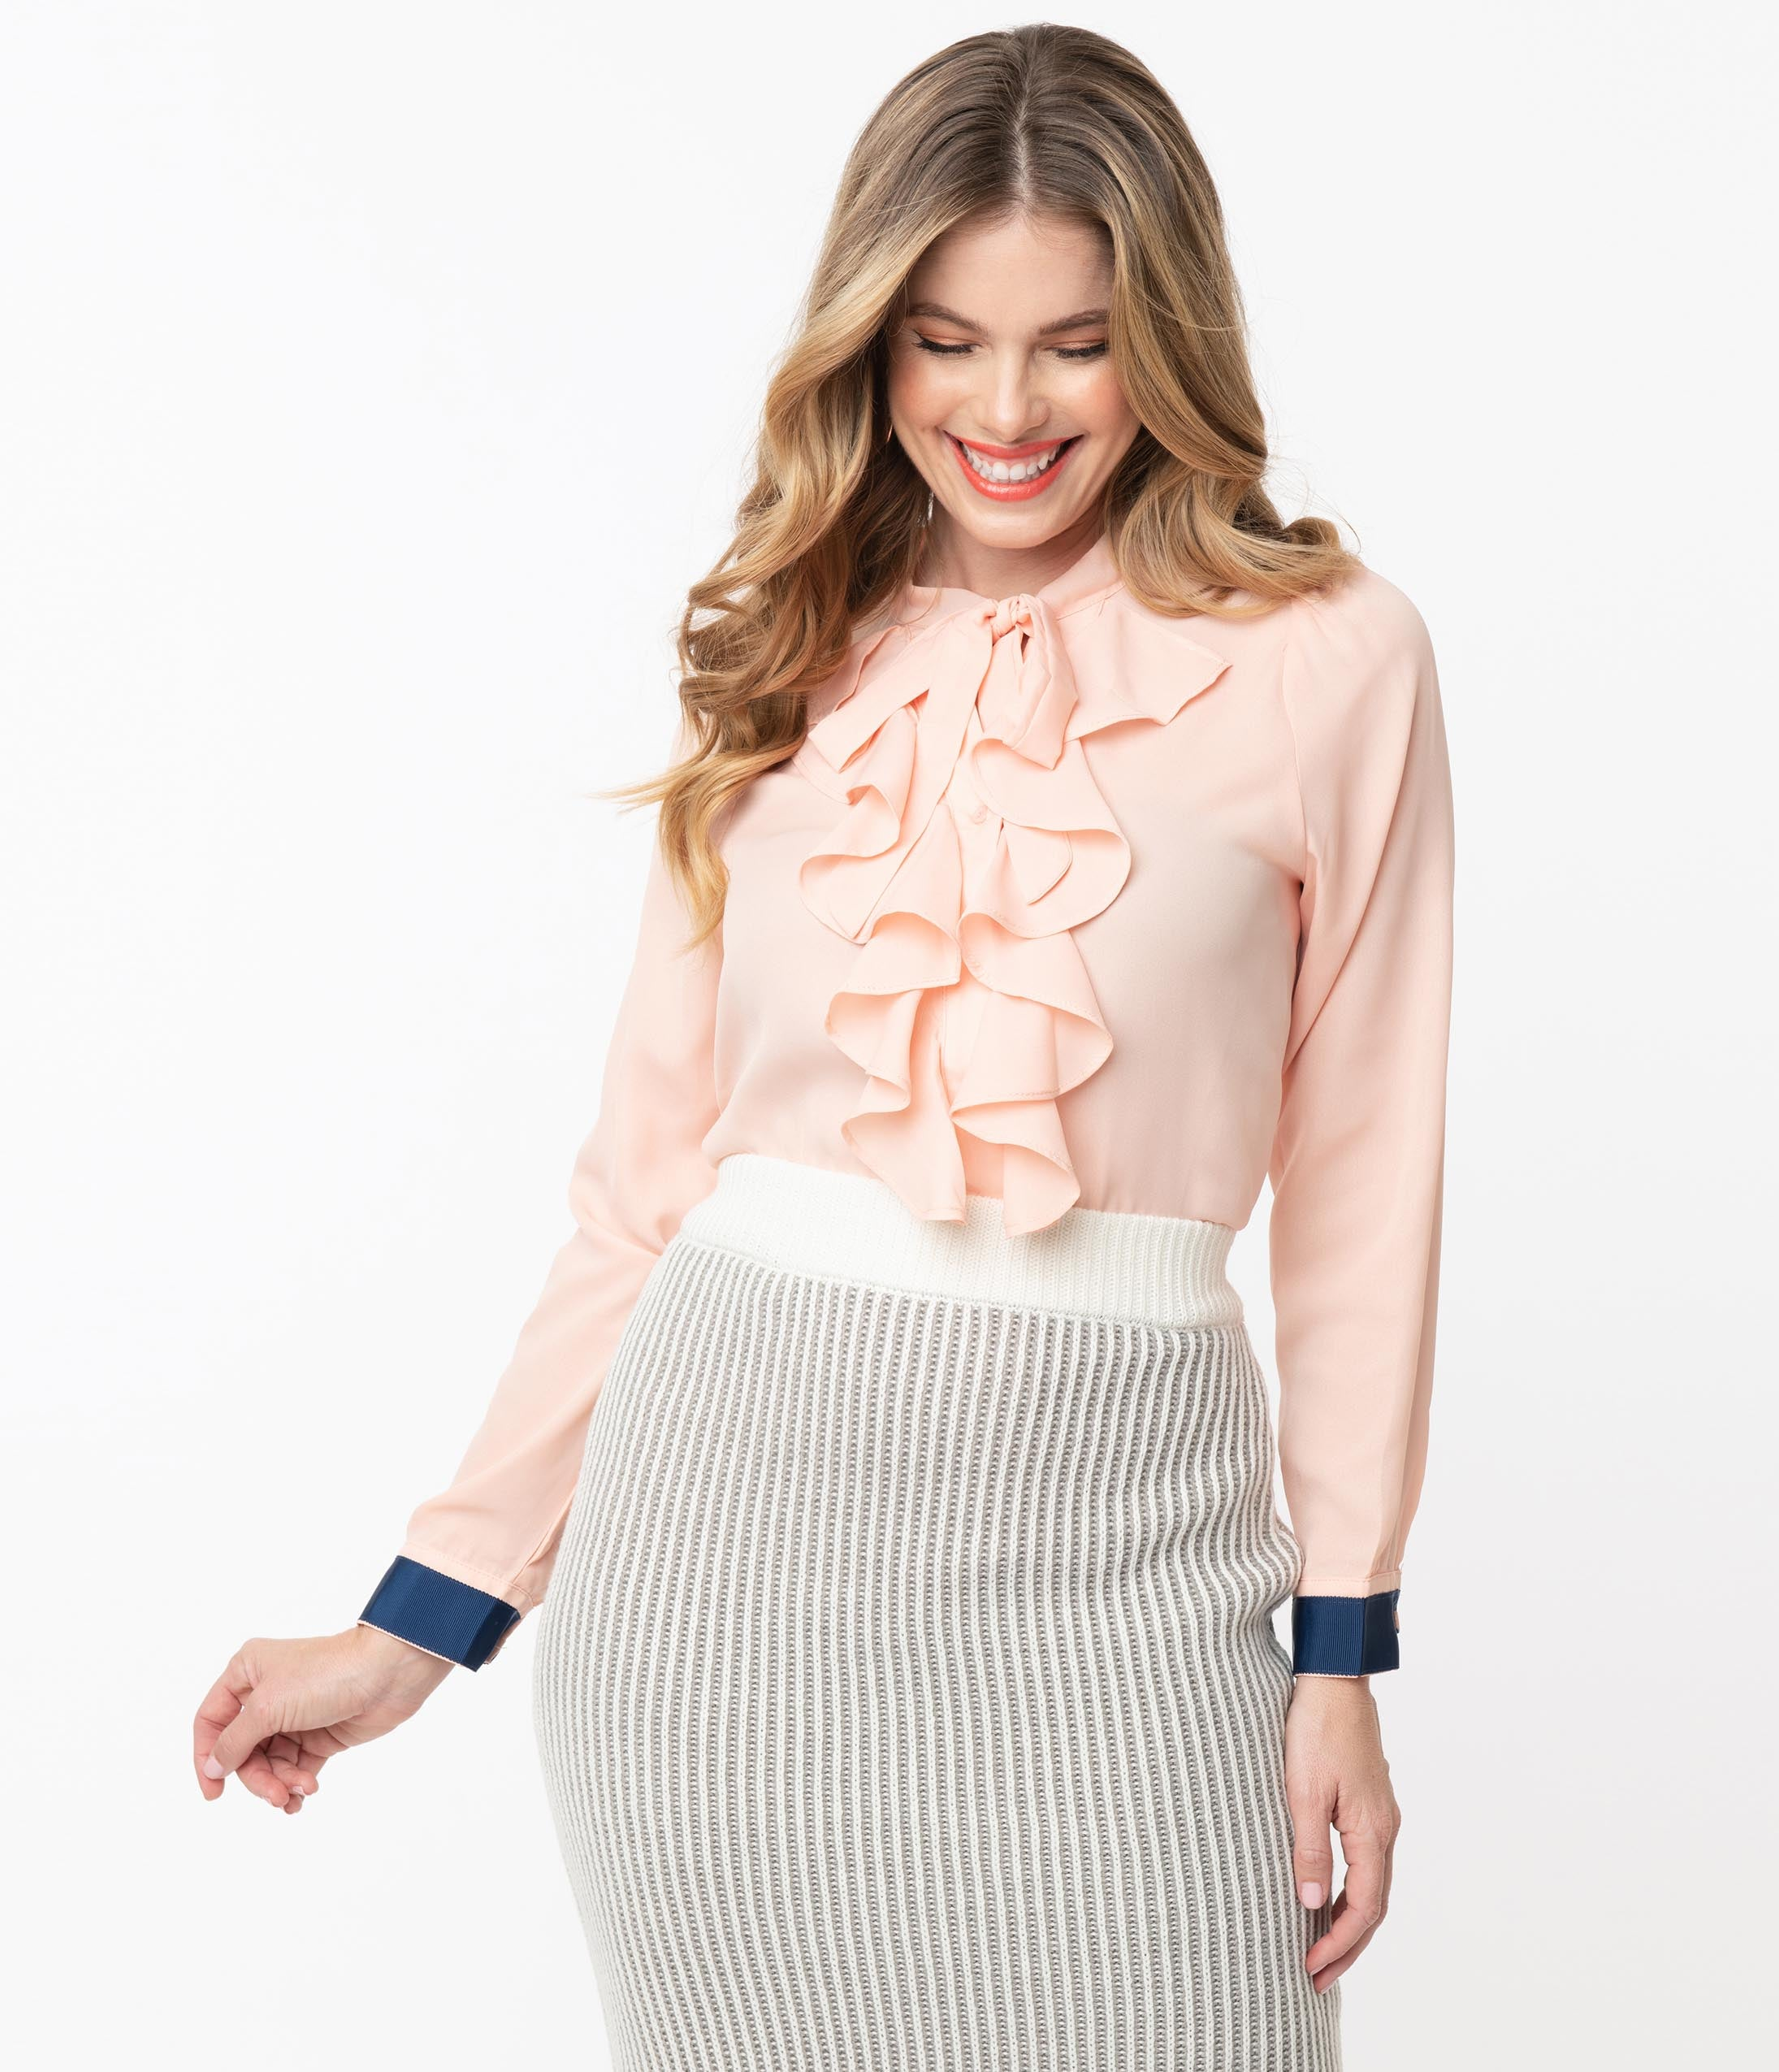 50s Shirts & Tops Vintage Style Light Pink Ruffle Bow Blouse $52.00 AT vintagedancer.com